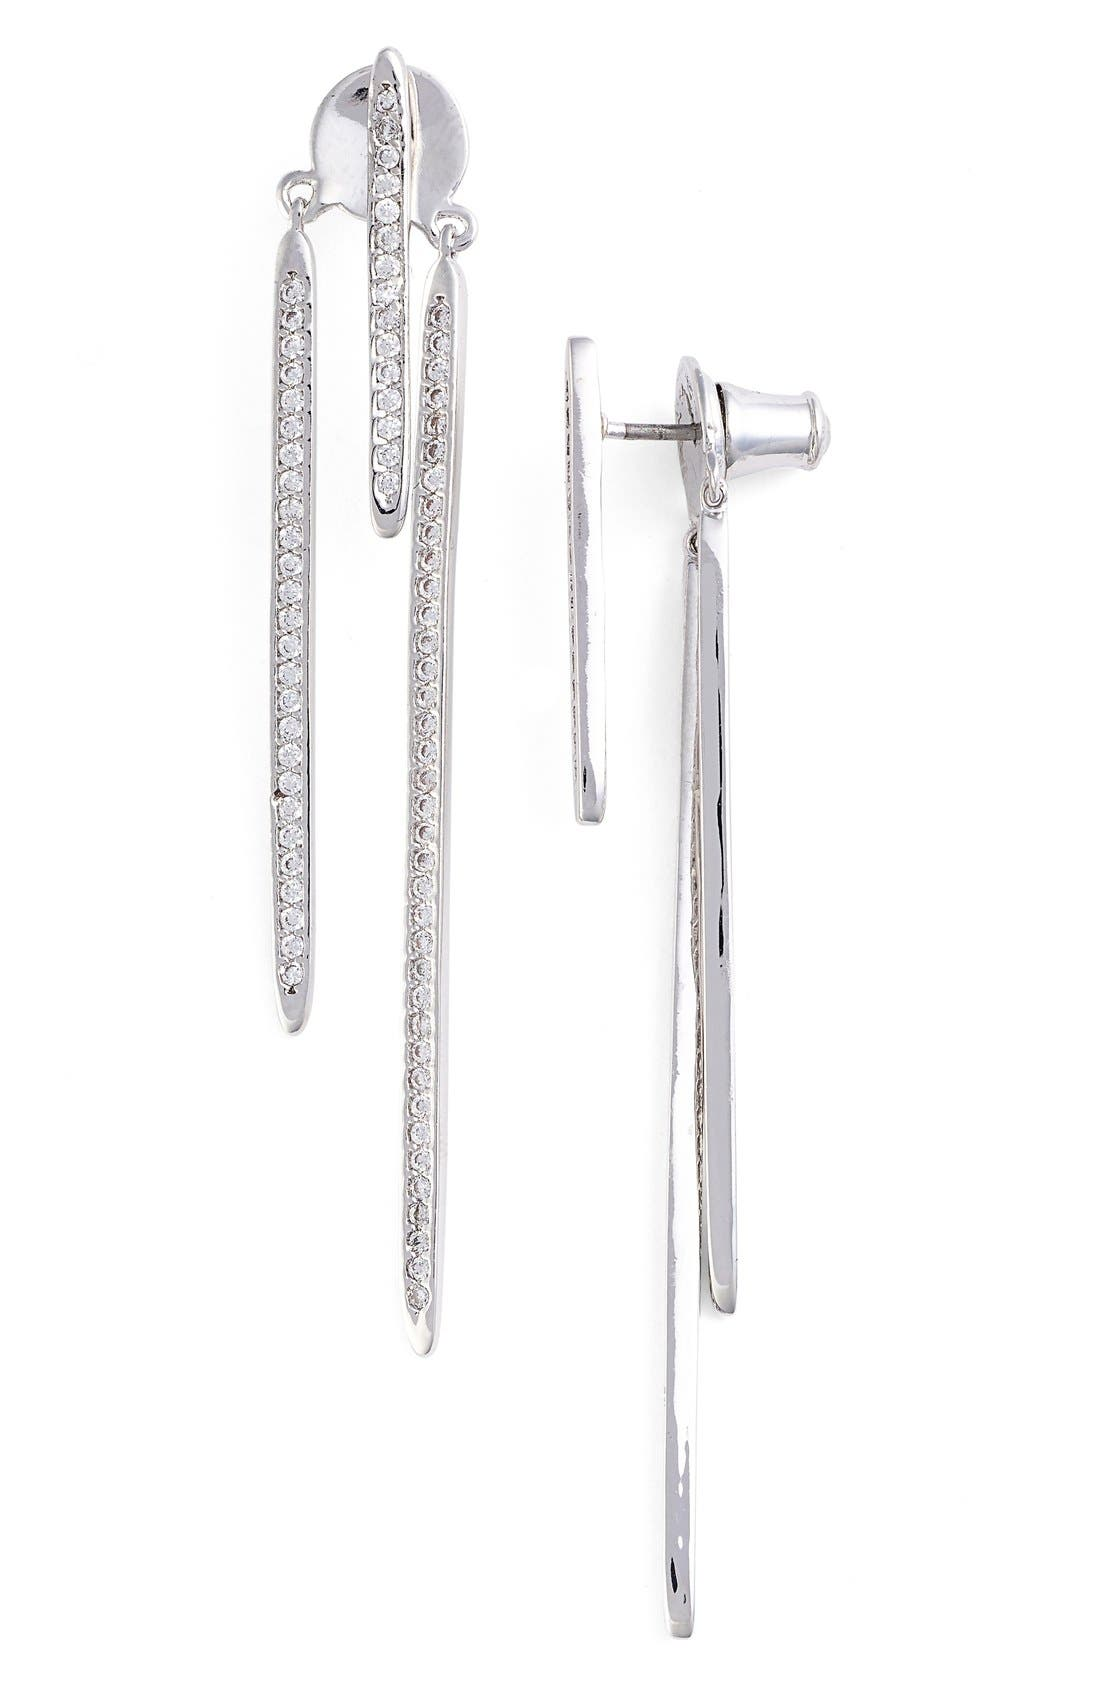 CZ BY KENNETH JAY LANE Pavé Cubic Zirconia Linear Drop Back Earrings